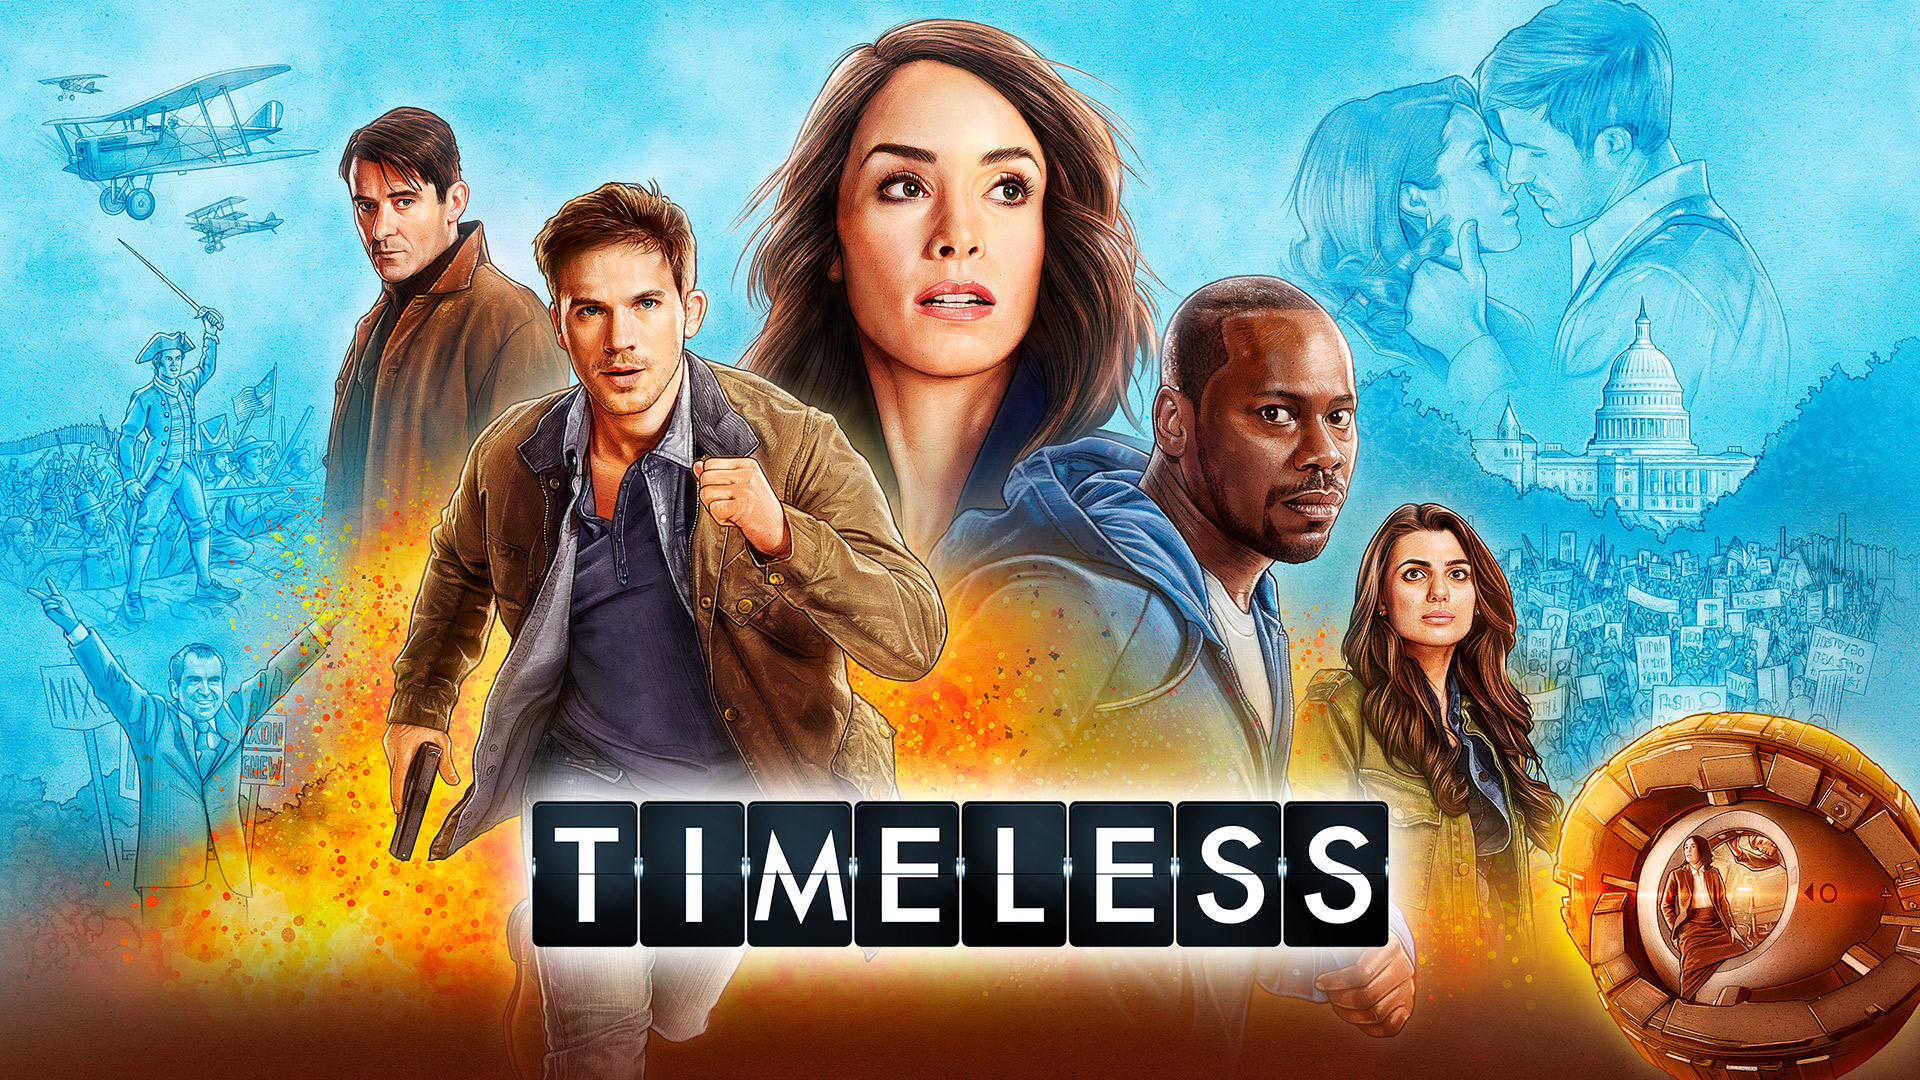 TIMELESS-S2-MultiPlatform-AllShows-Search-Image-1920x1080.jpg